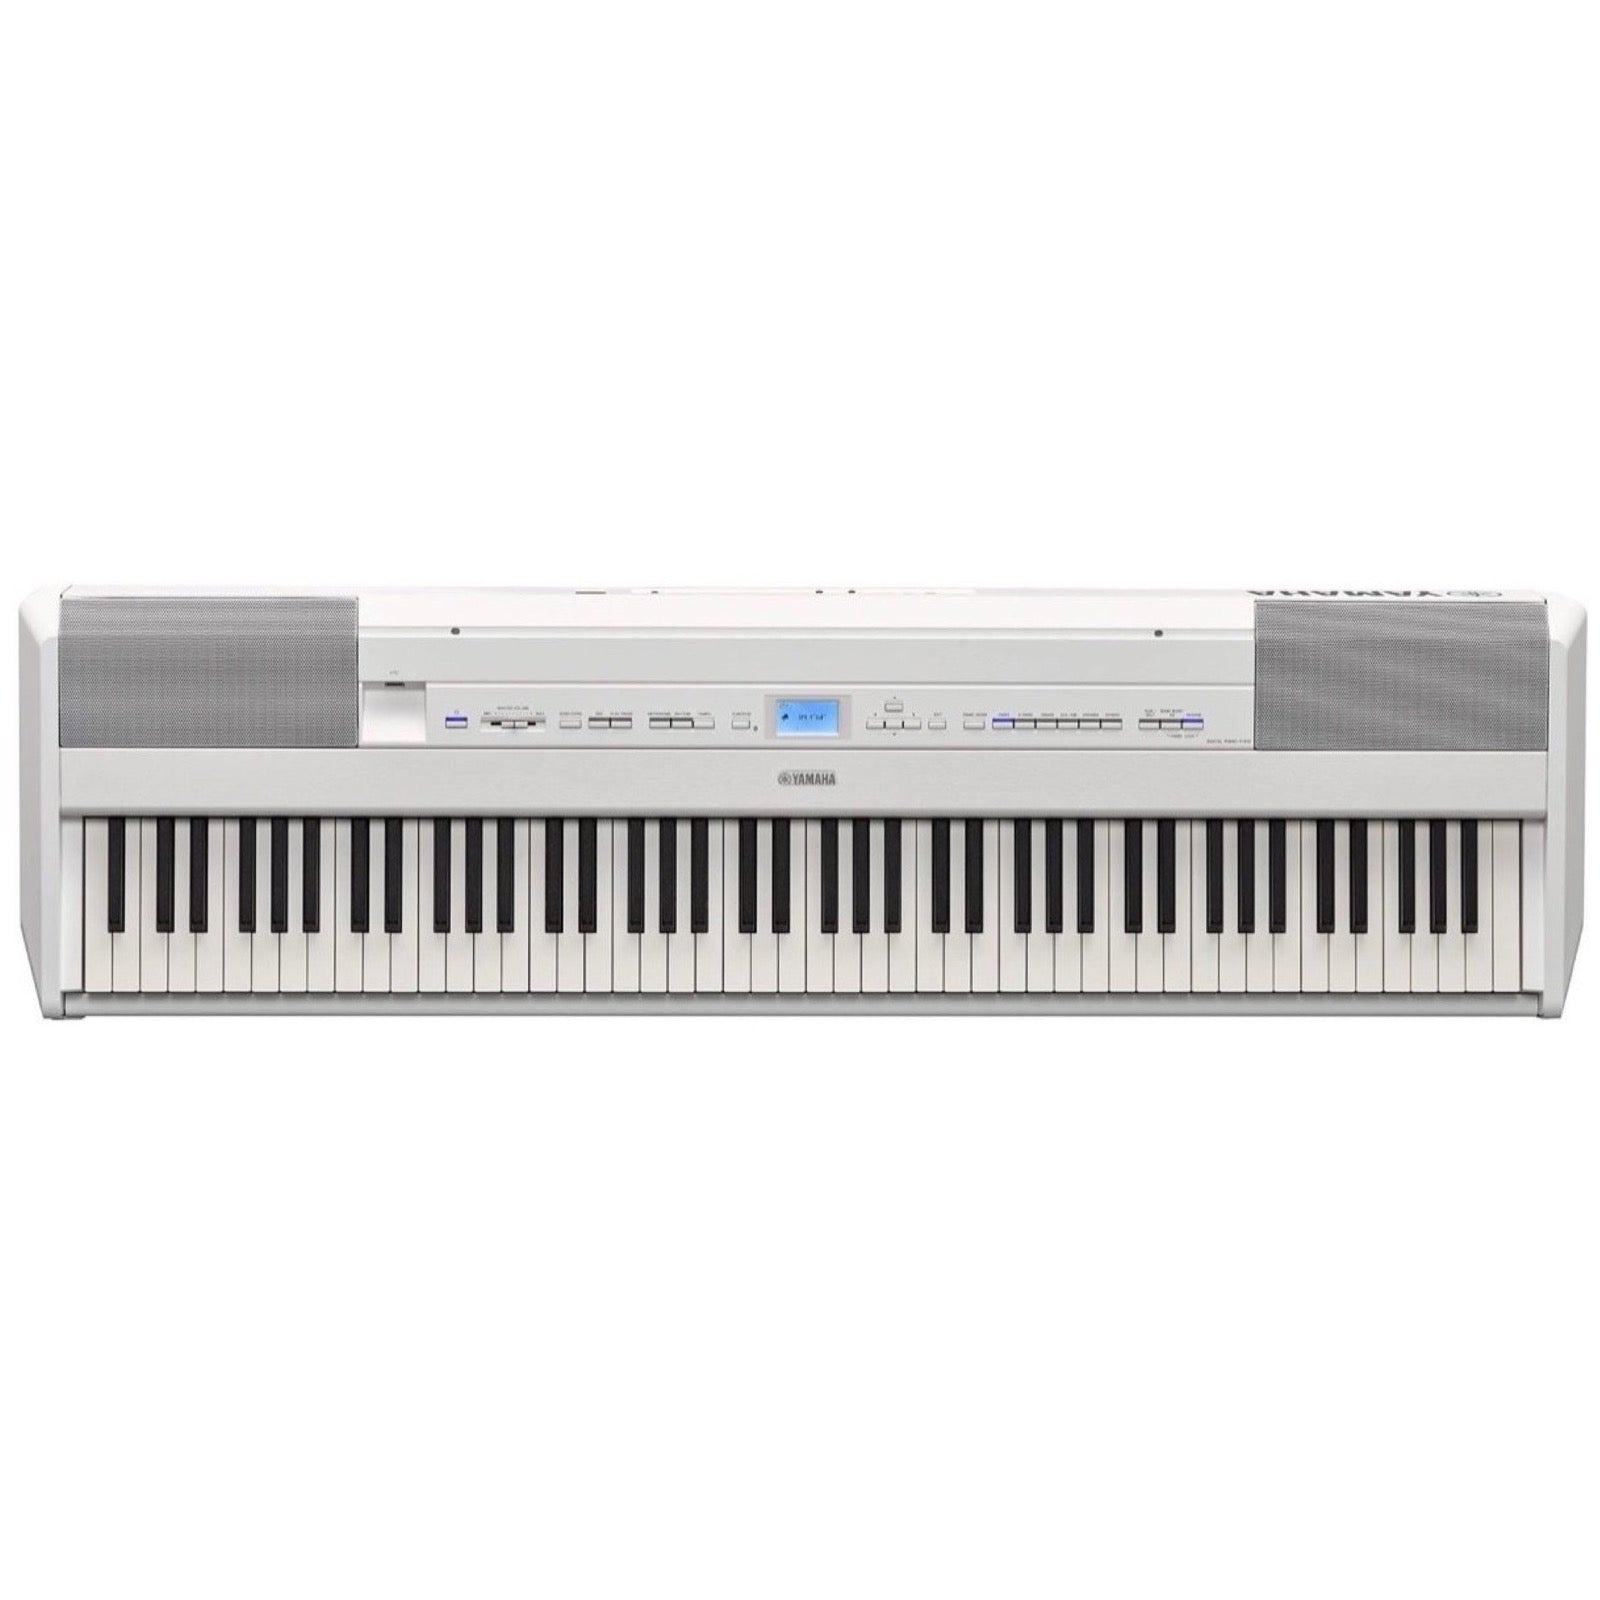 Yamaha P-515 Digital Piano, 88-Key, White